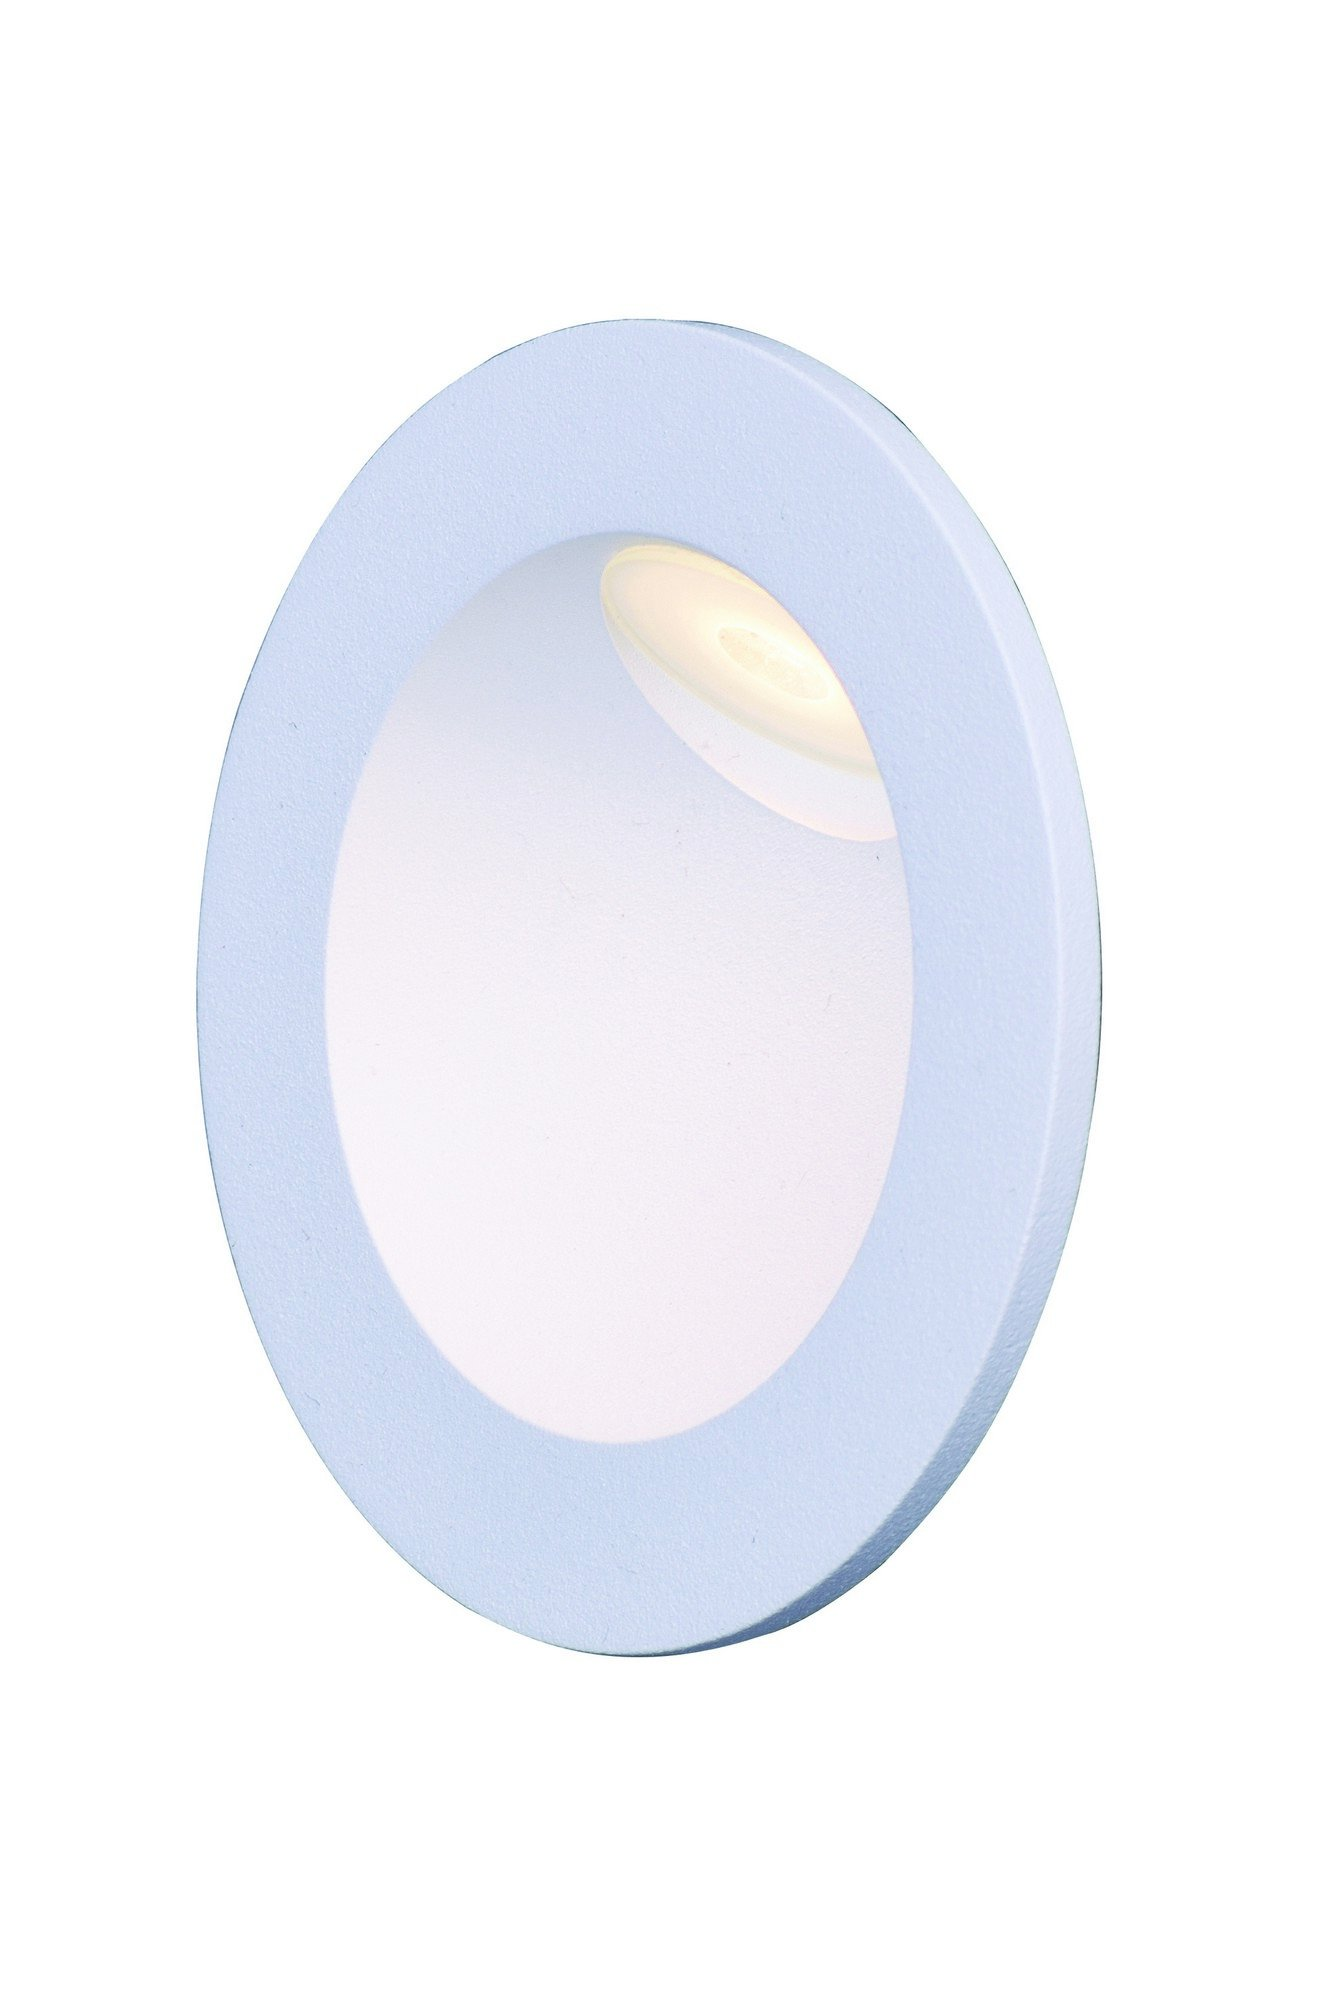 ET2 E41404-WT Alumilux LED Outdoor Wall Sconce, White Finish, Glass, PCB LED Bulb, 50W Max., Dry Safety Rated, Shade Material, 156 Rated Lumens